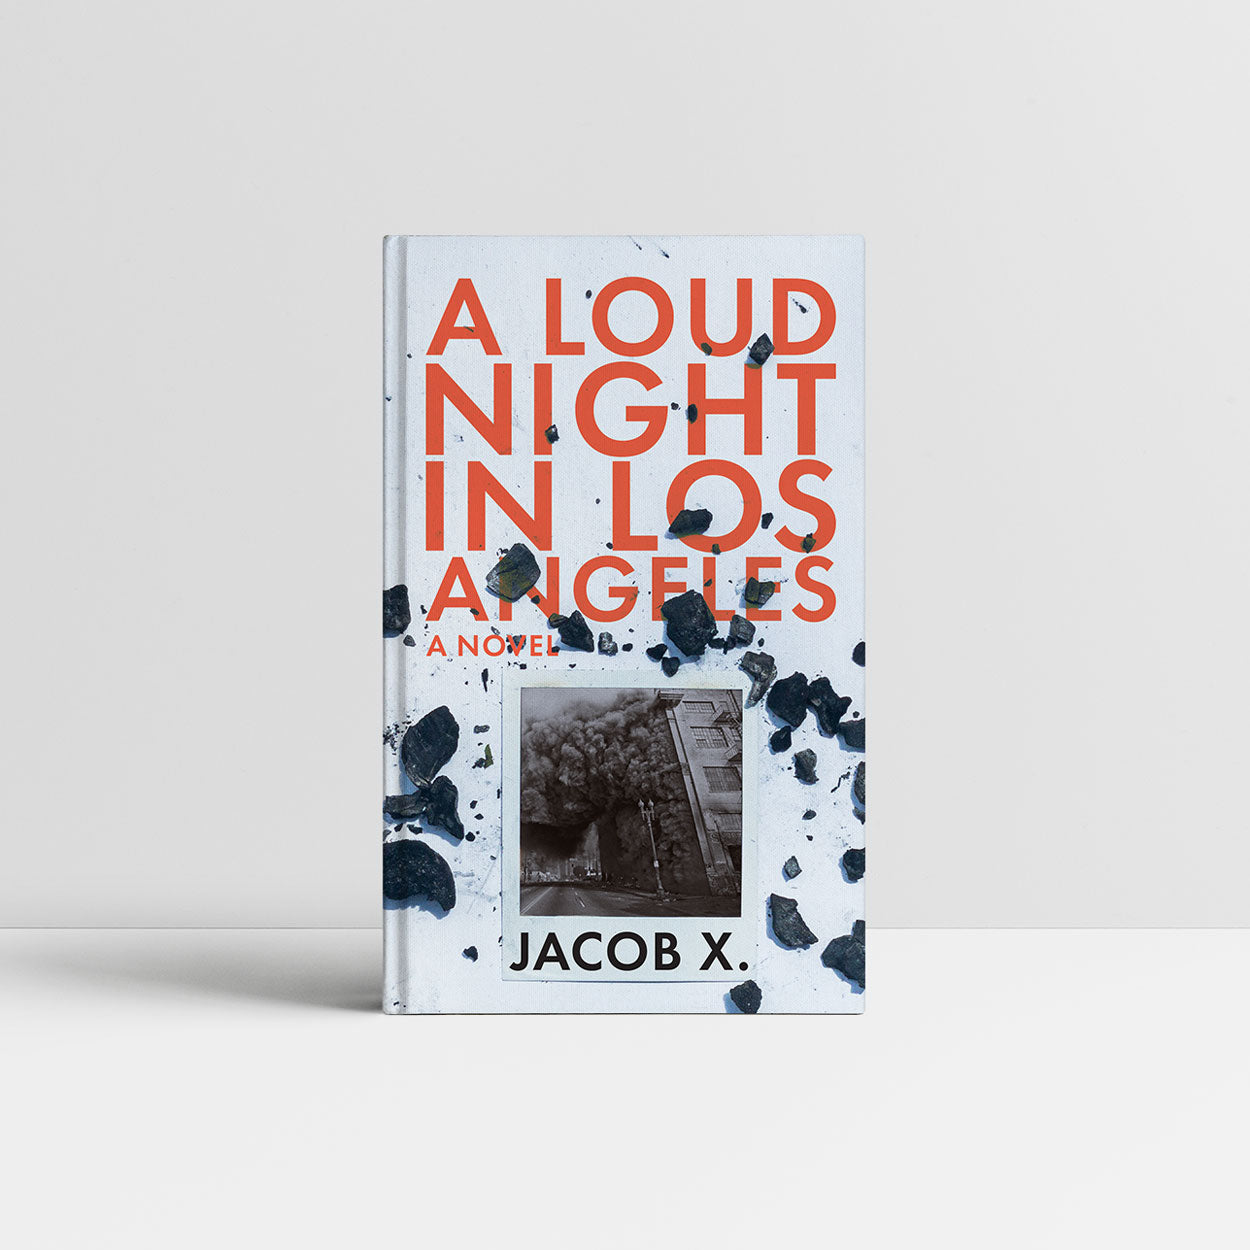 A Loud Night in Los Angeles - A Novel